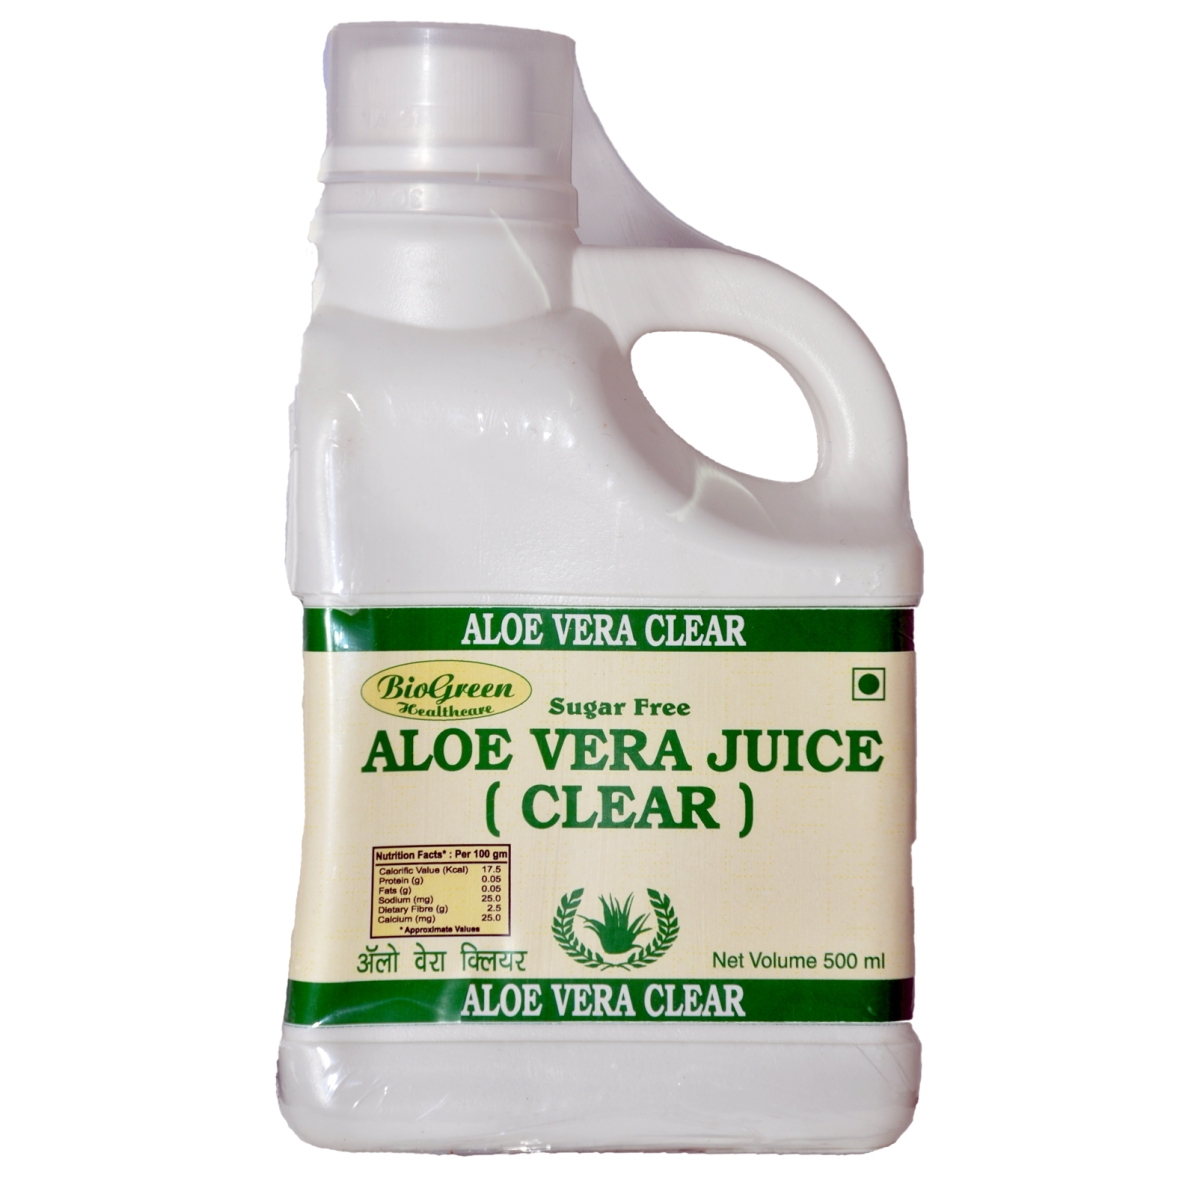 Aloe vera Clear Juice In Bihar